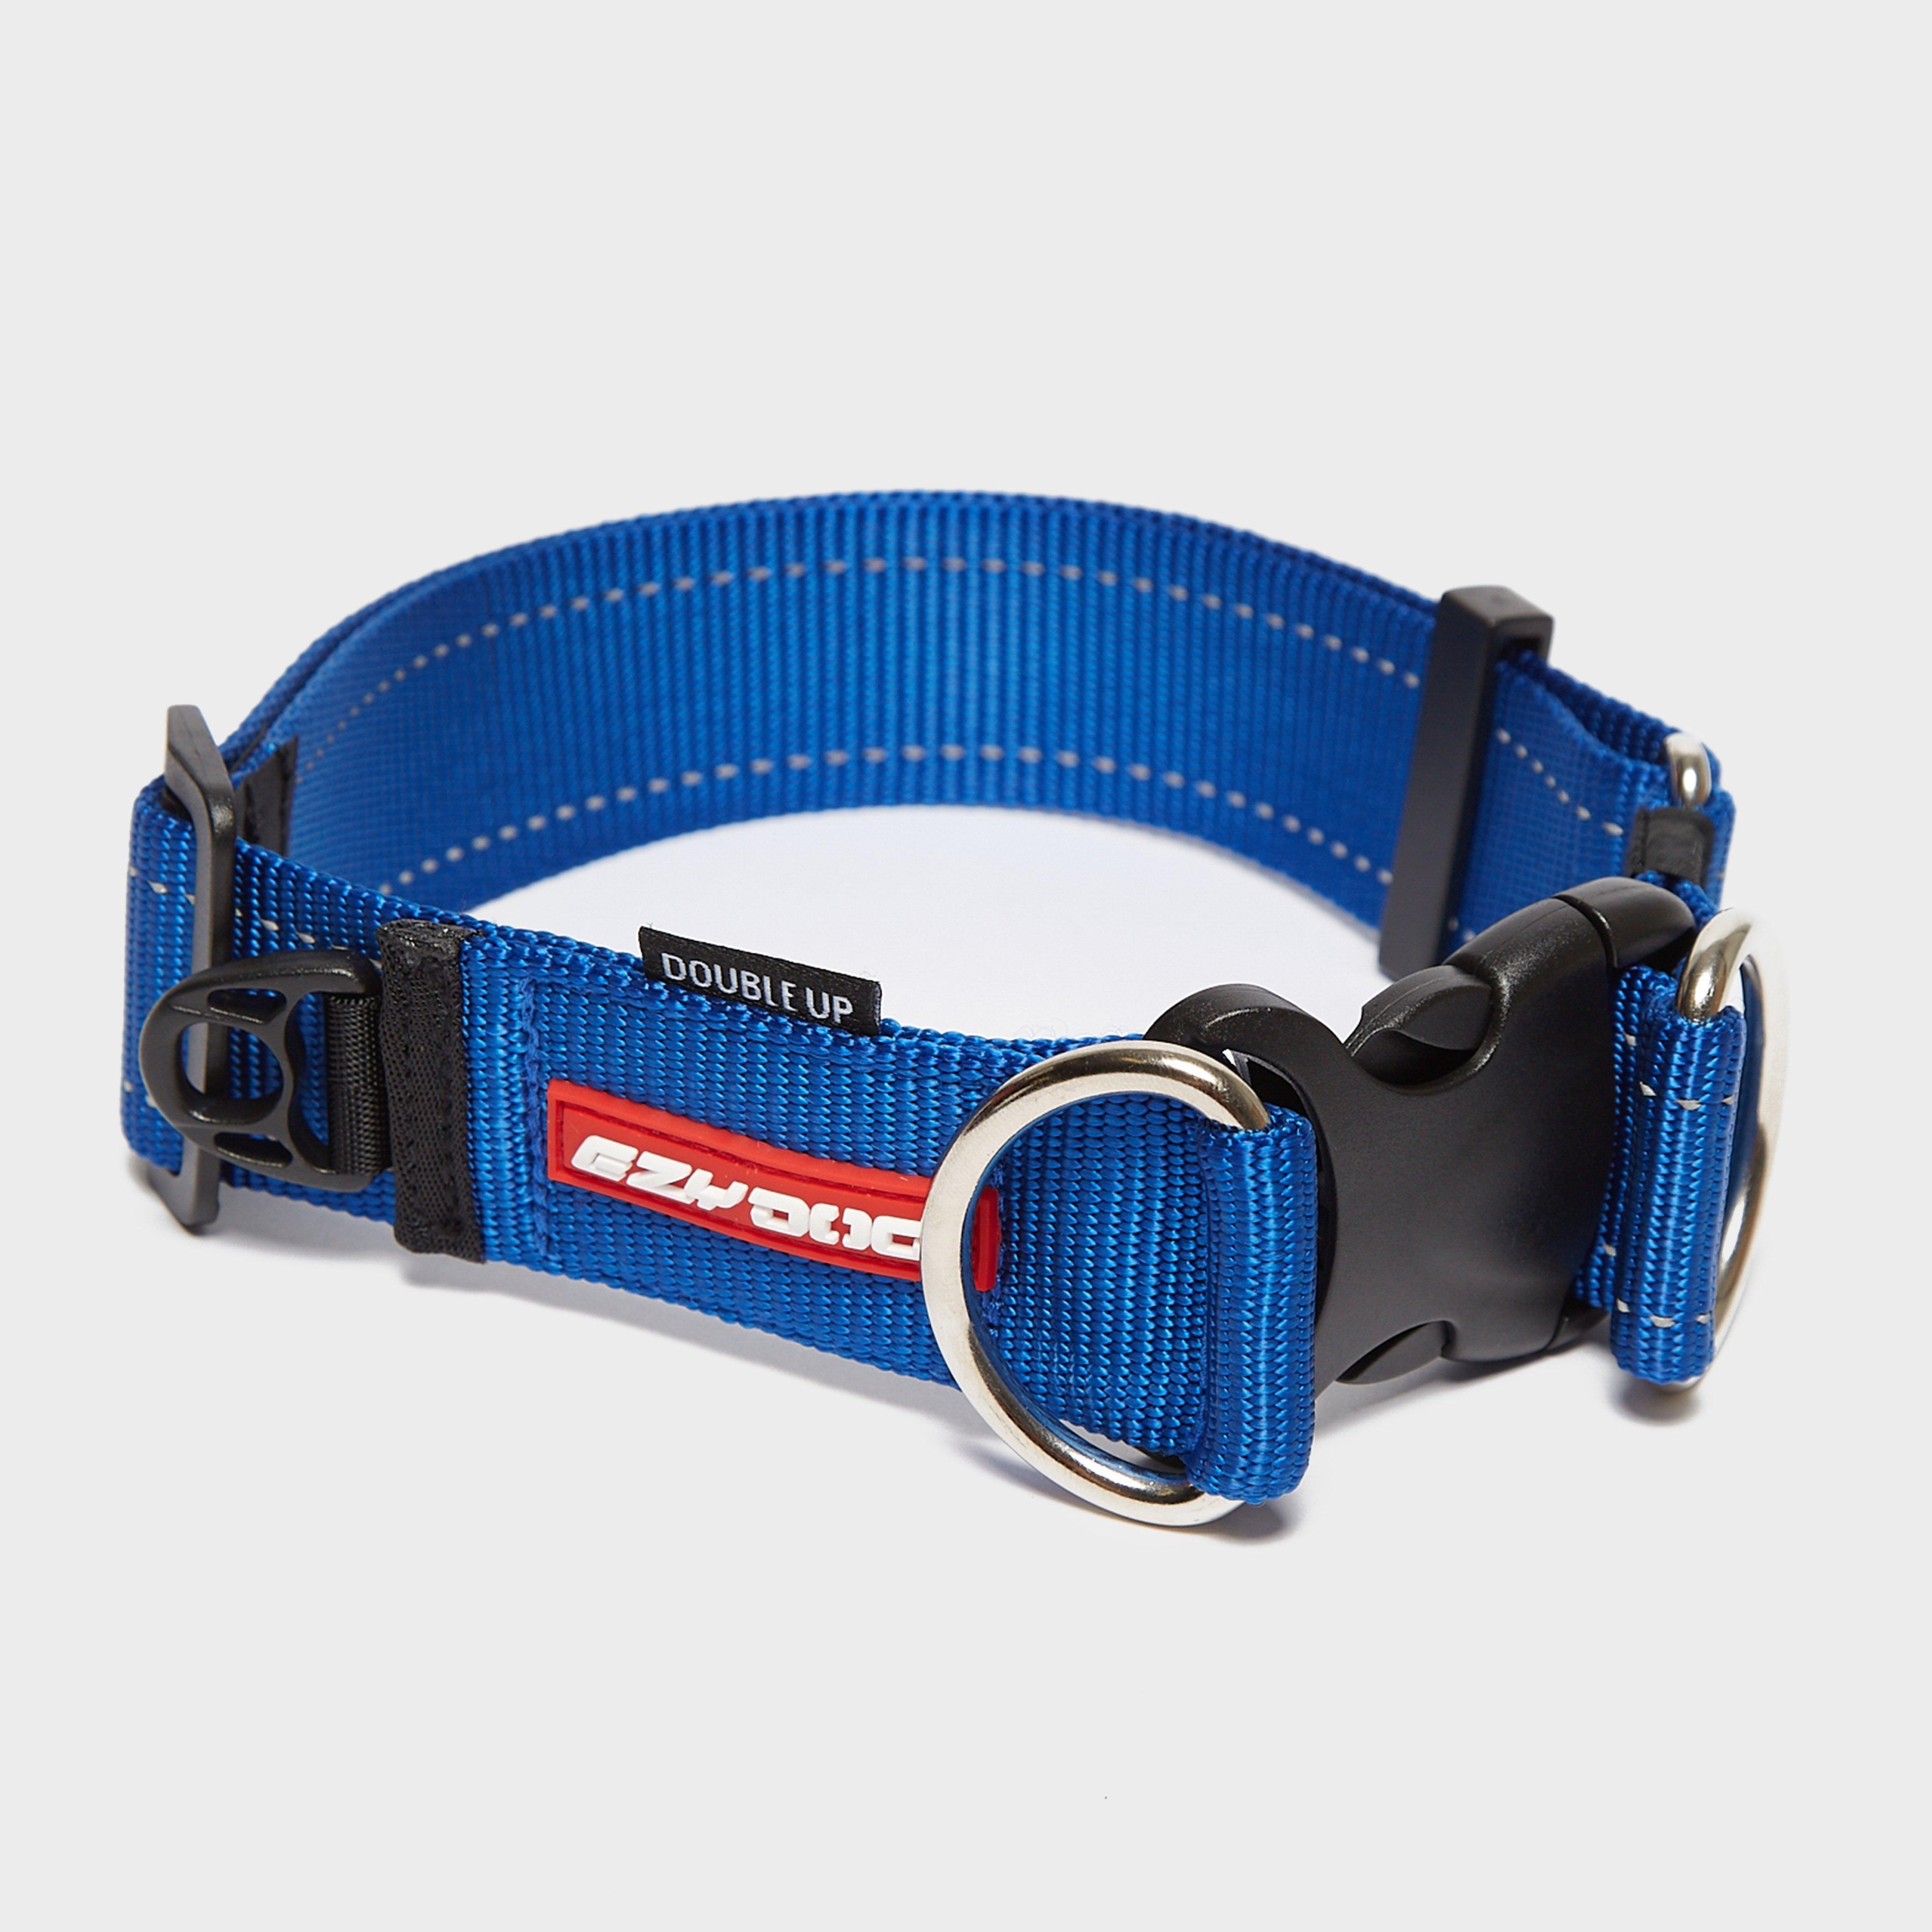 Image of Ezy-Dog Double Up Collar Xl - Blue/Mbl, Blue/MBL